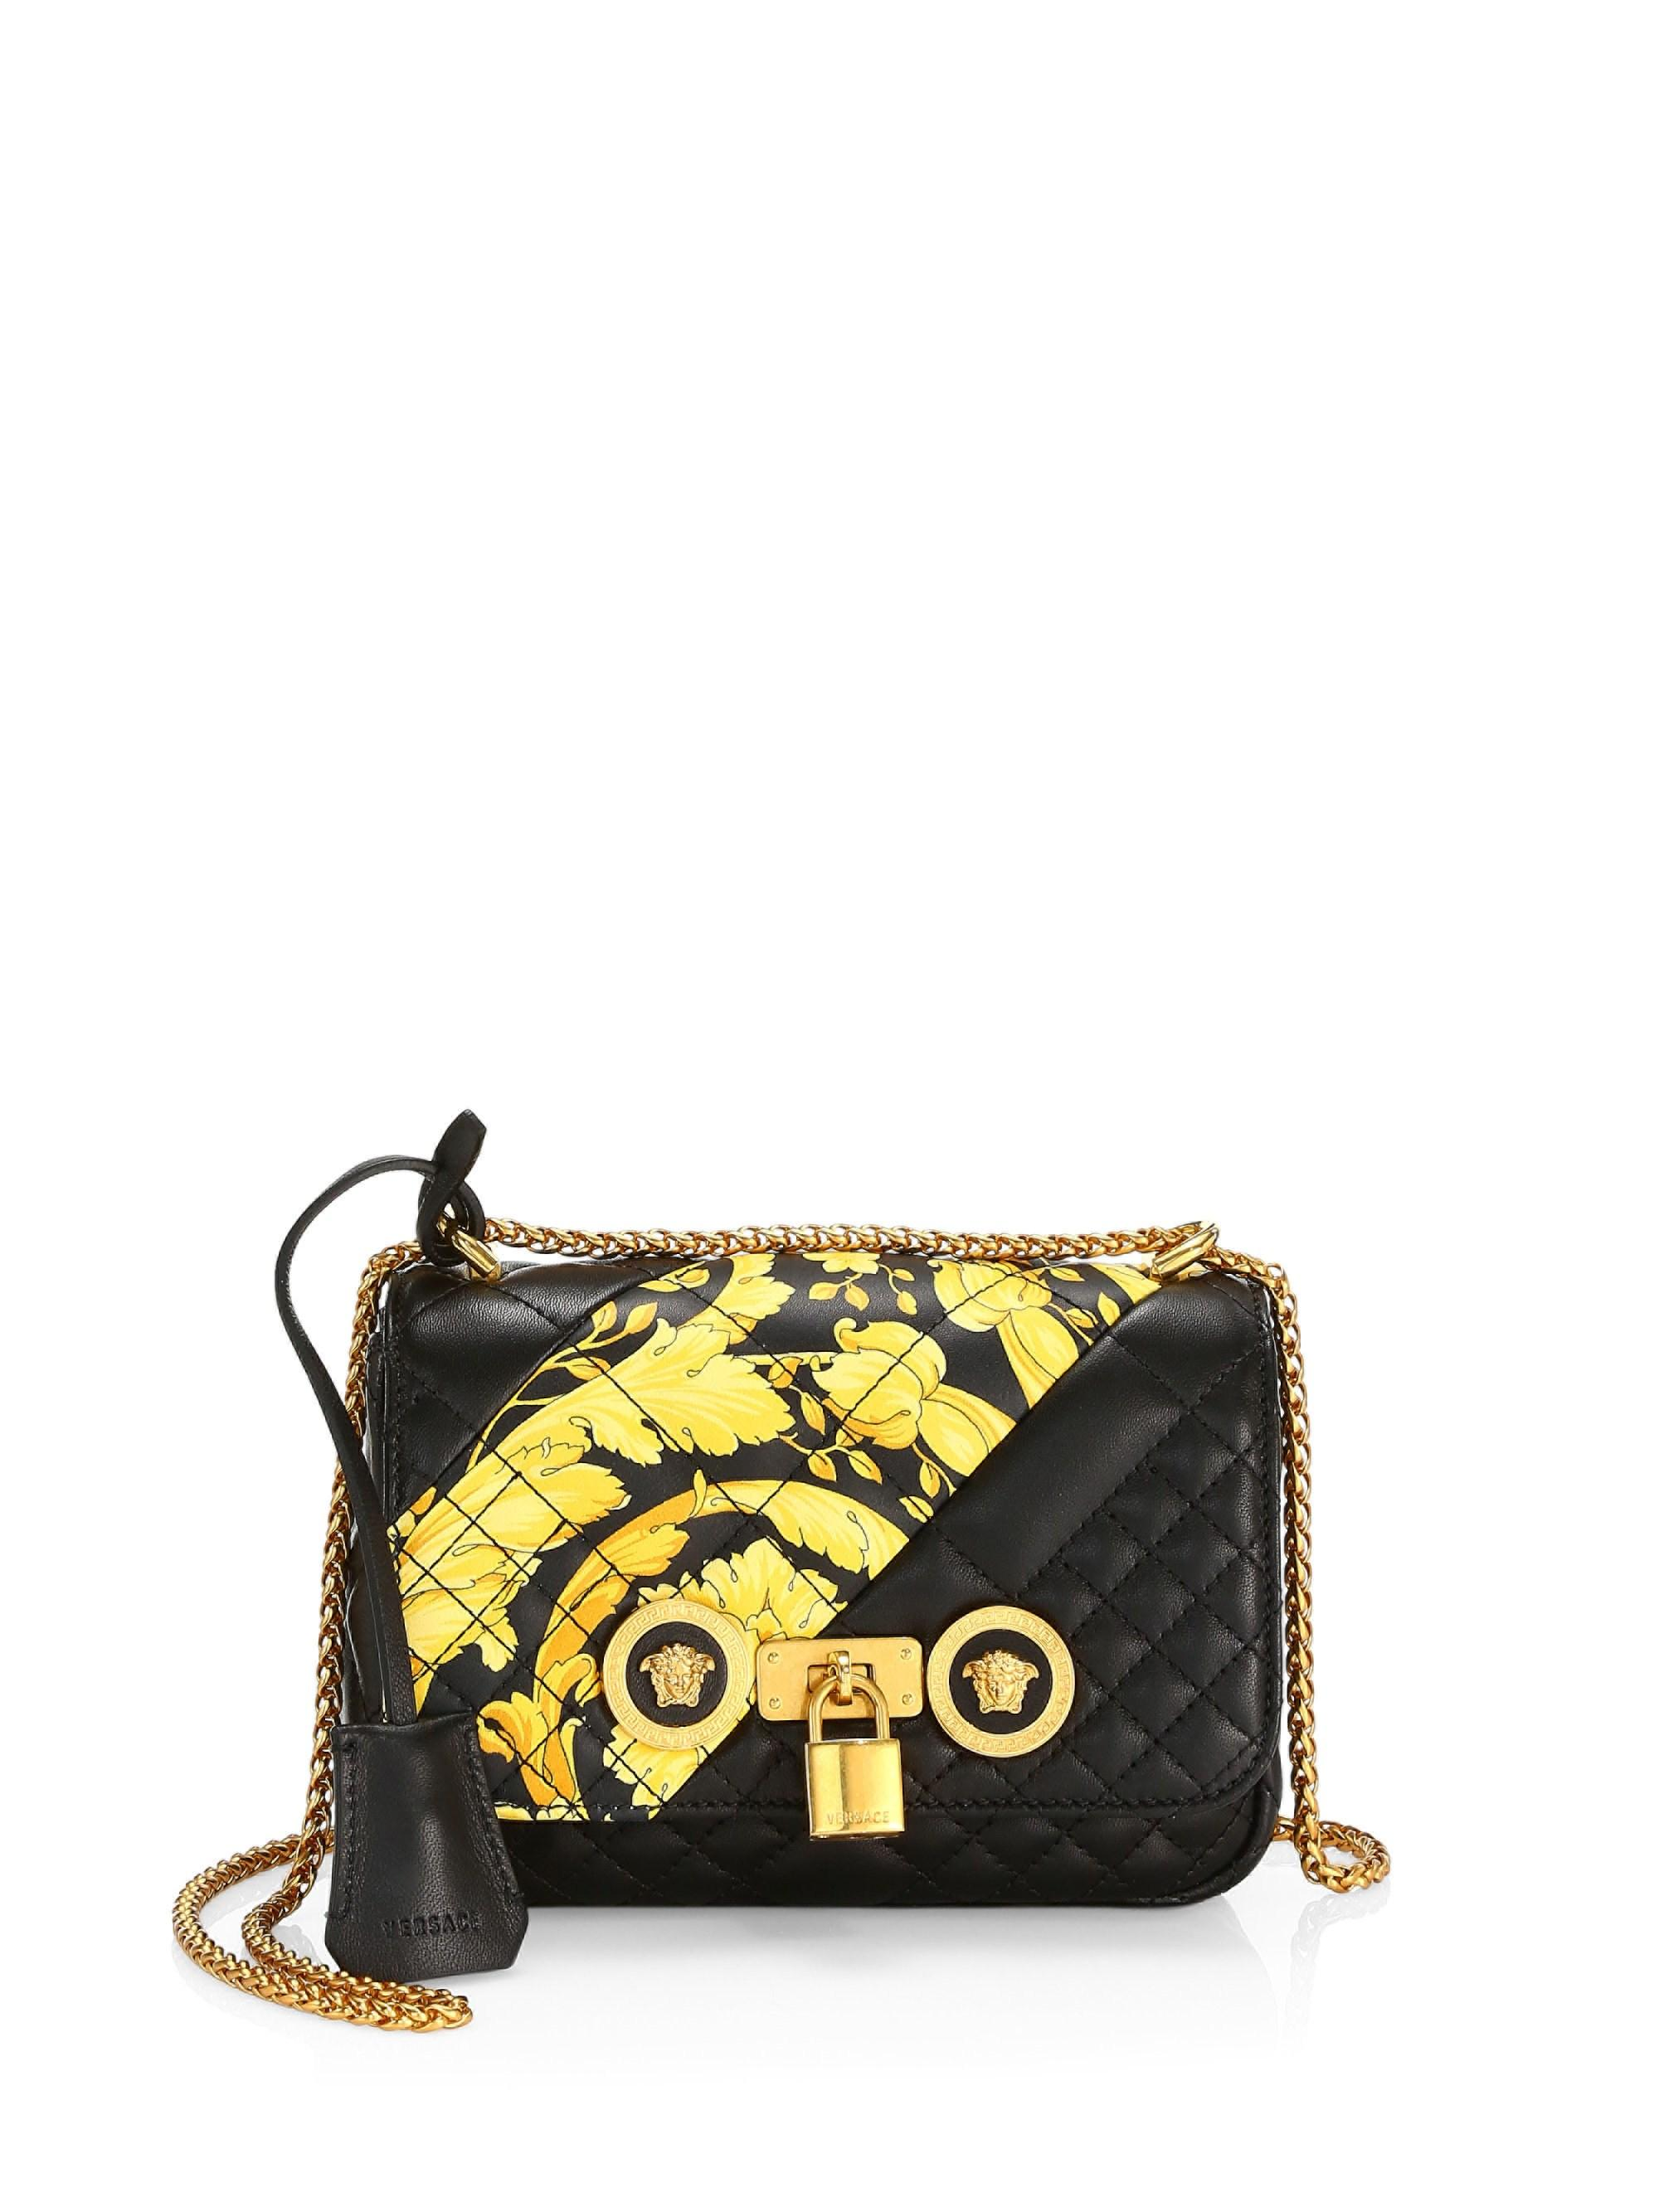 59c27f3ed6 Versace - Black Medium Icon Quilted Leather Shoulder Bag - Lyst. View  fullscreen